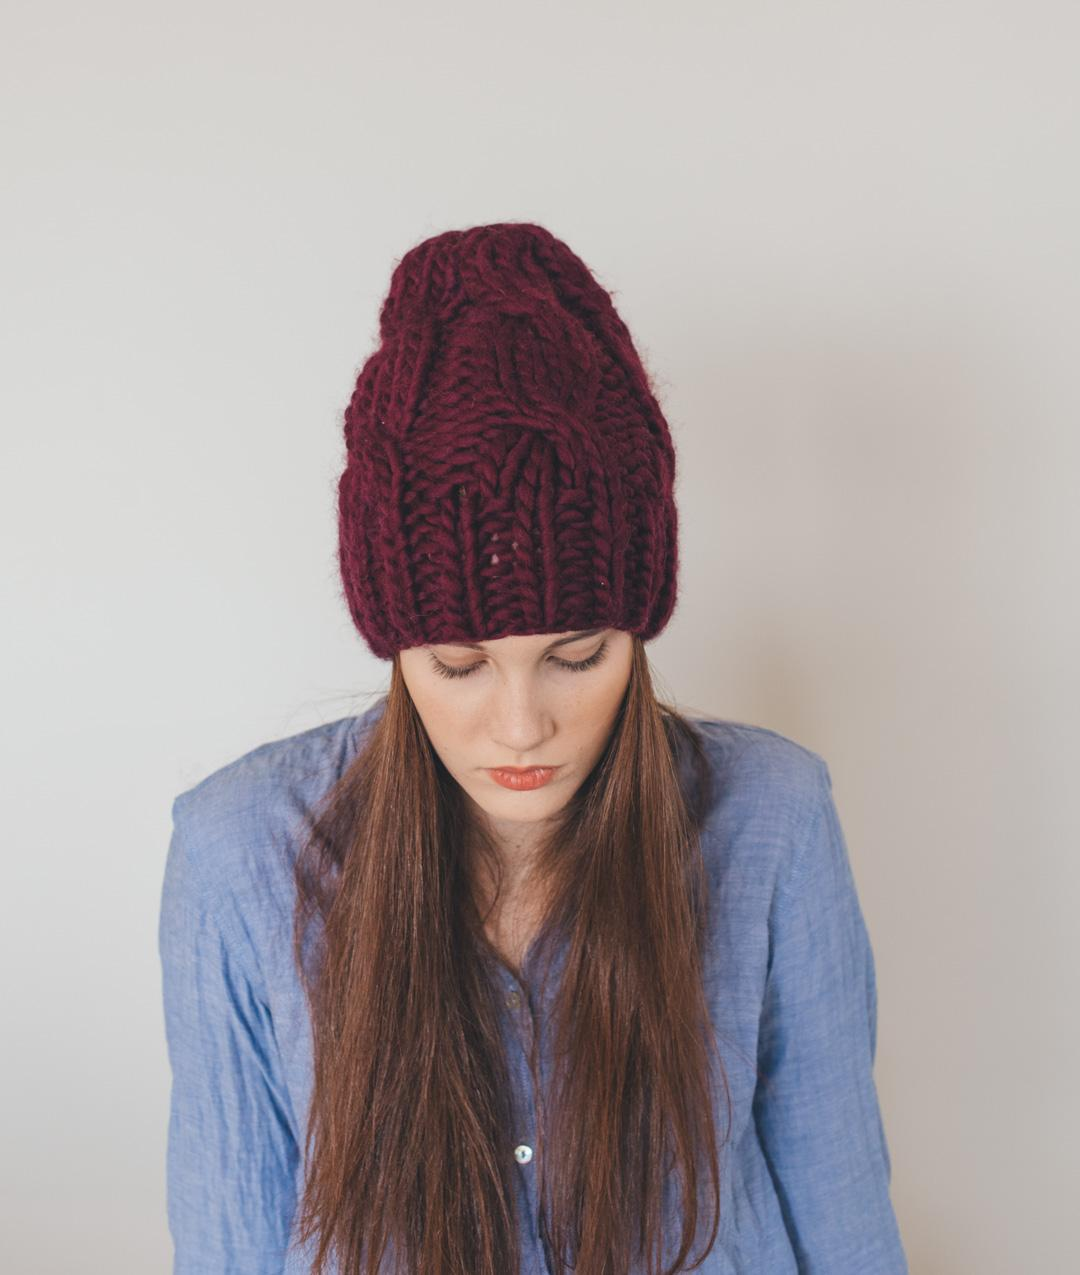 Hats and Beanies - Wool - Cable Beanie - 1